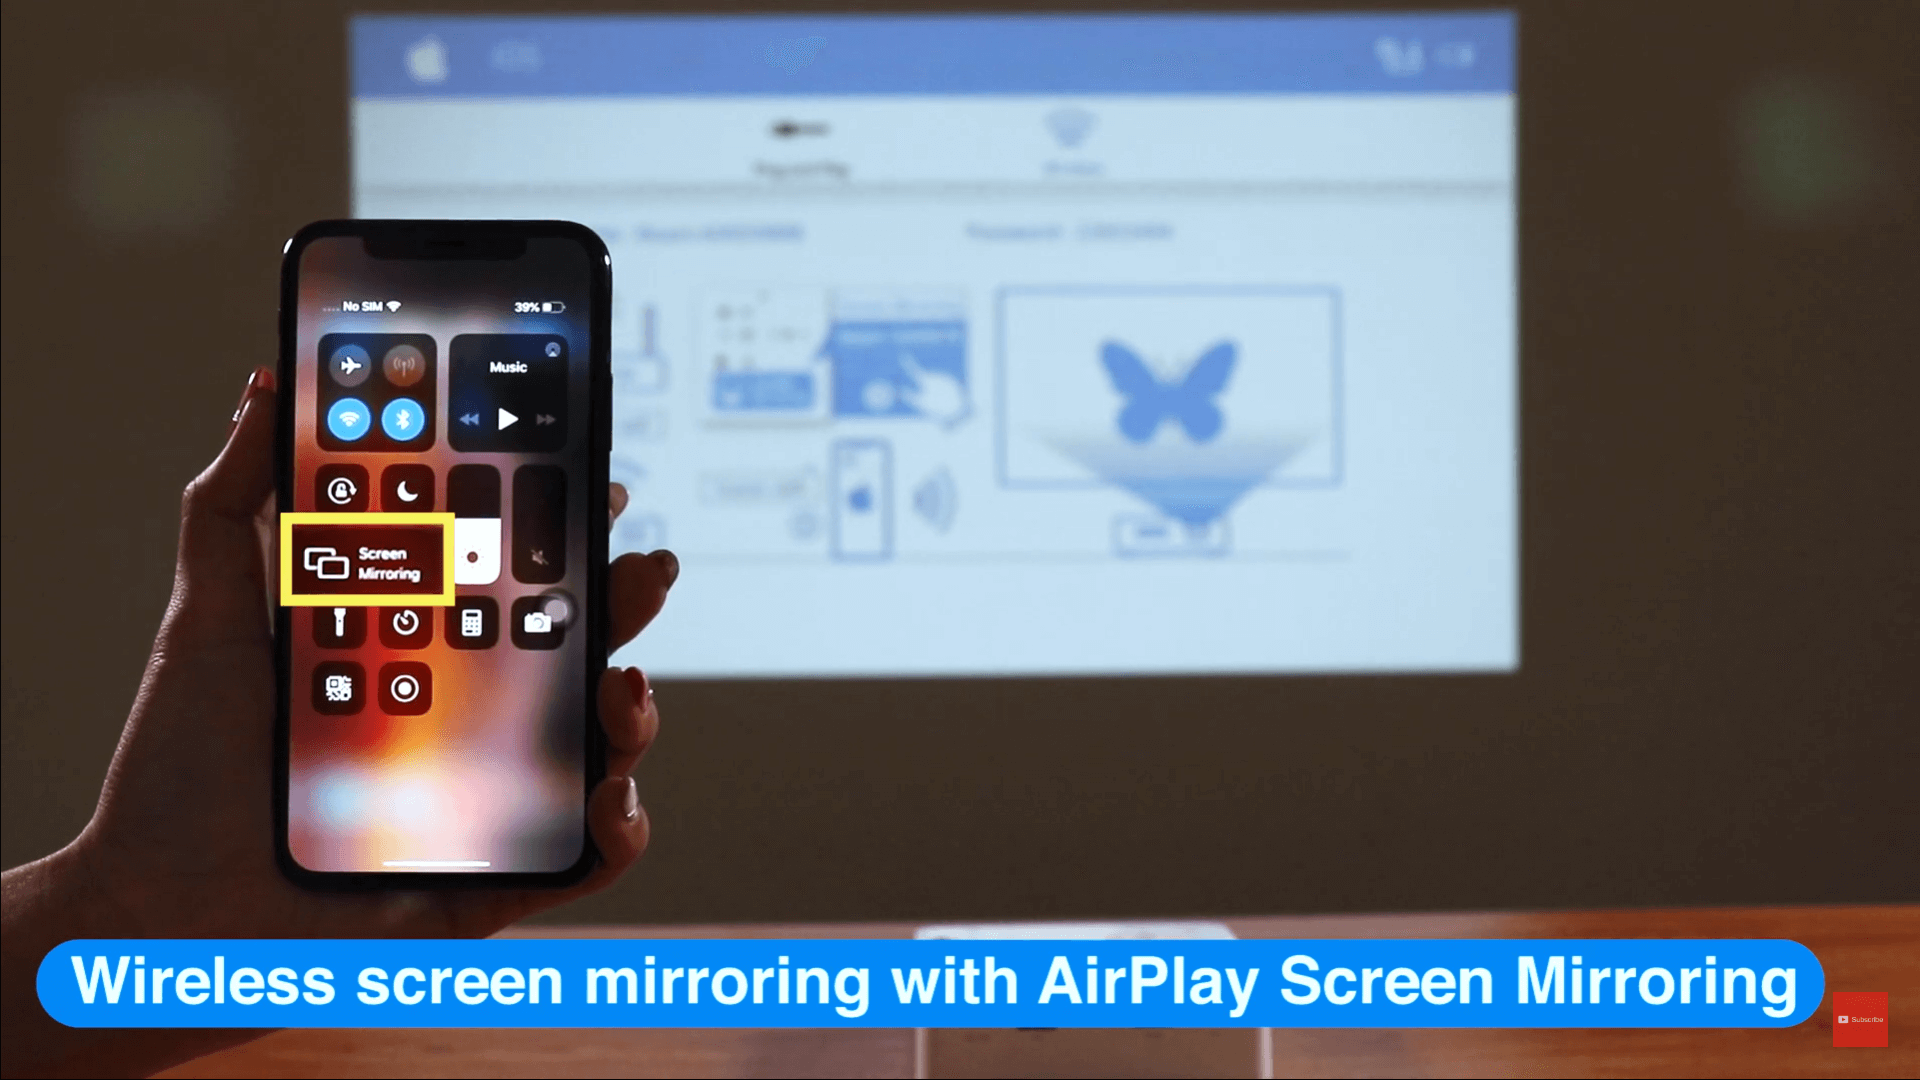 Especially supports AirPlay screen mirroring